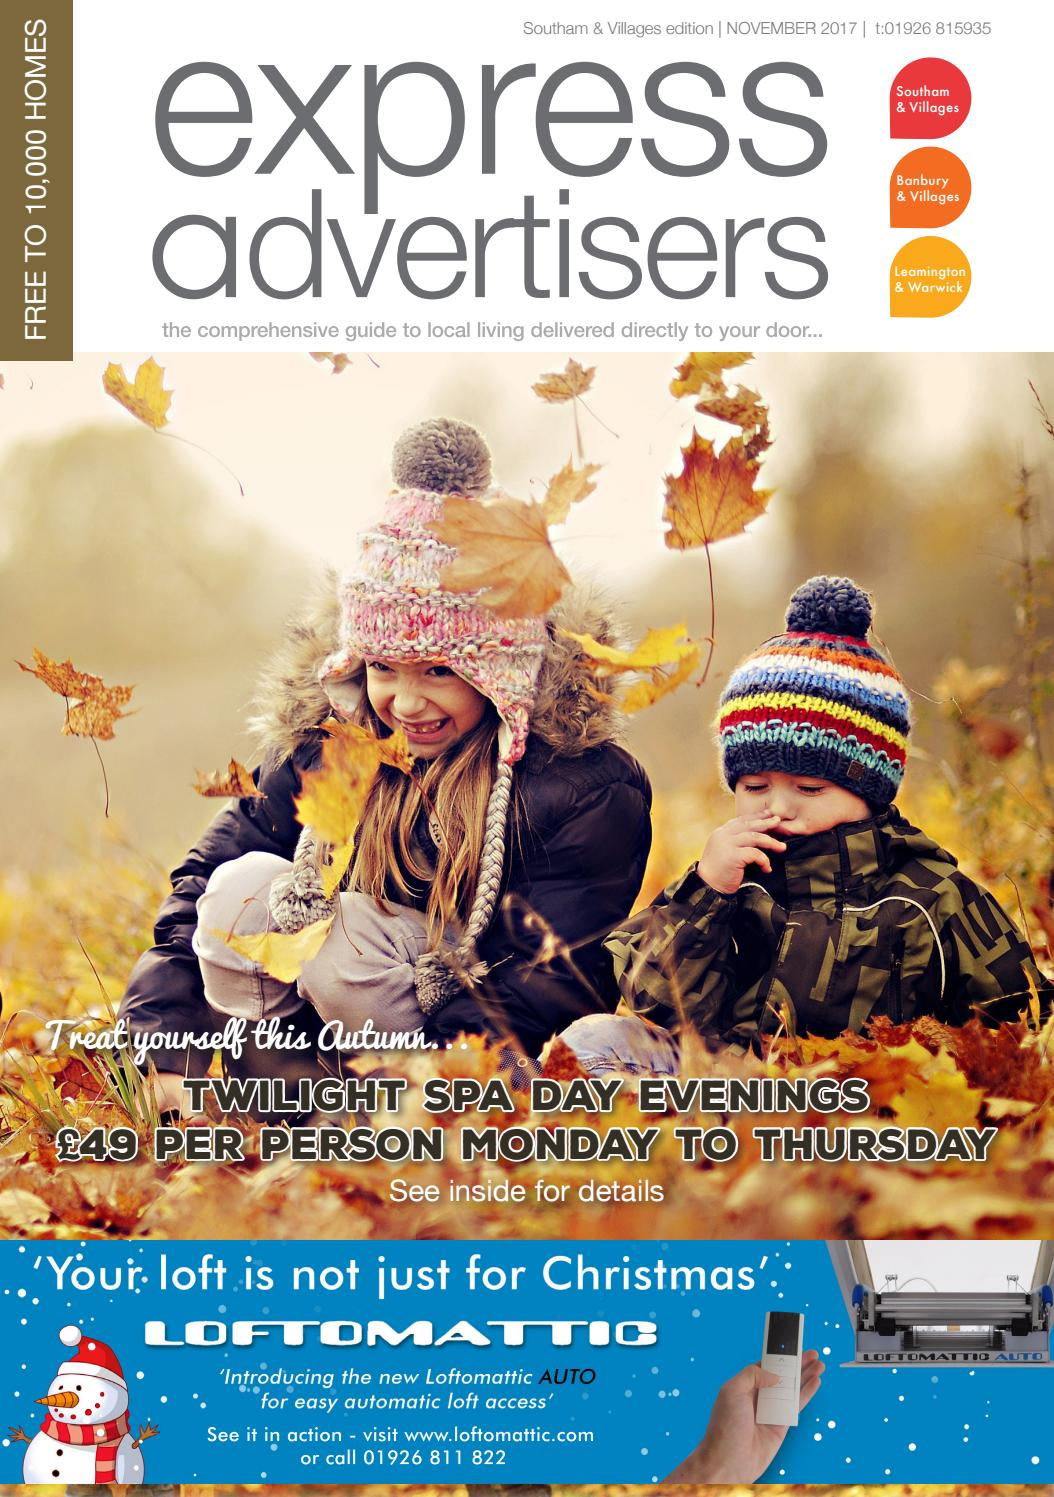 Express Advertisers Southam & Villages November 2017